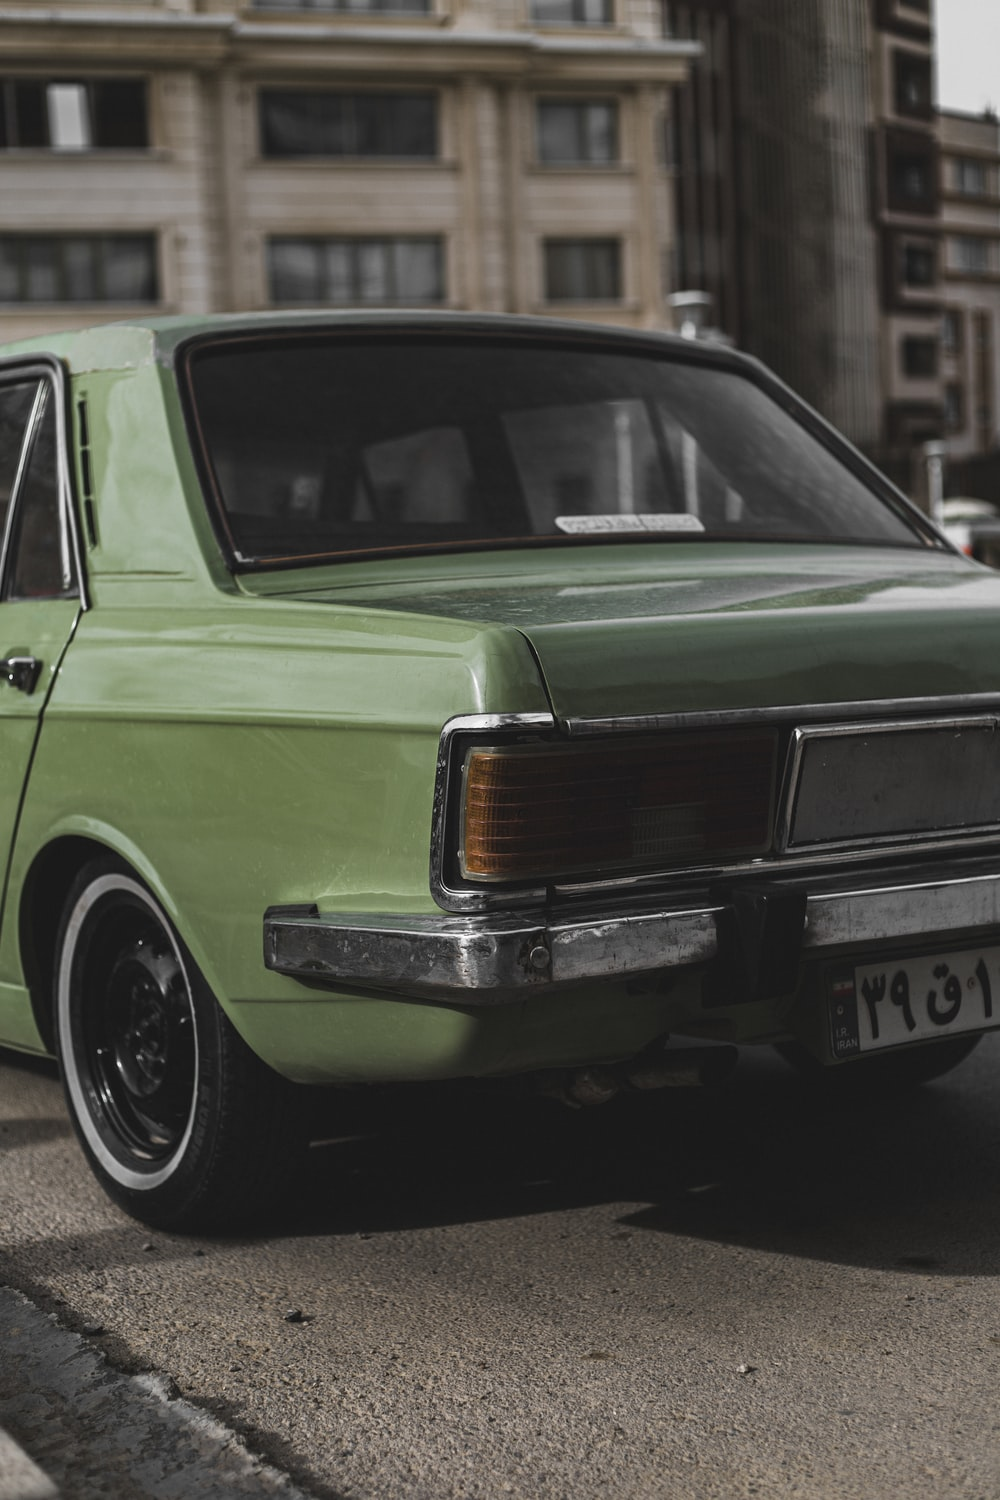 green and black classic car